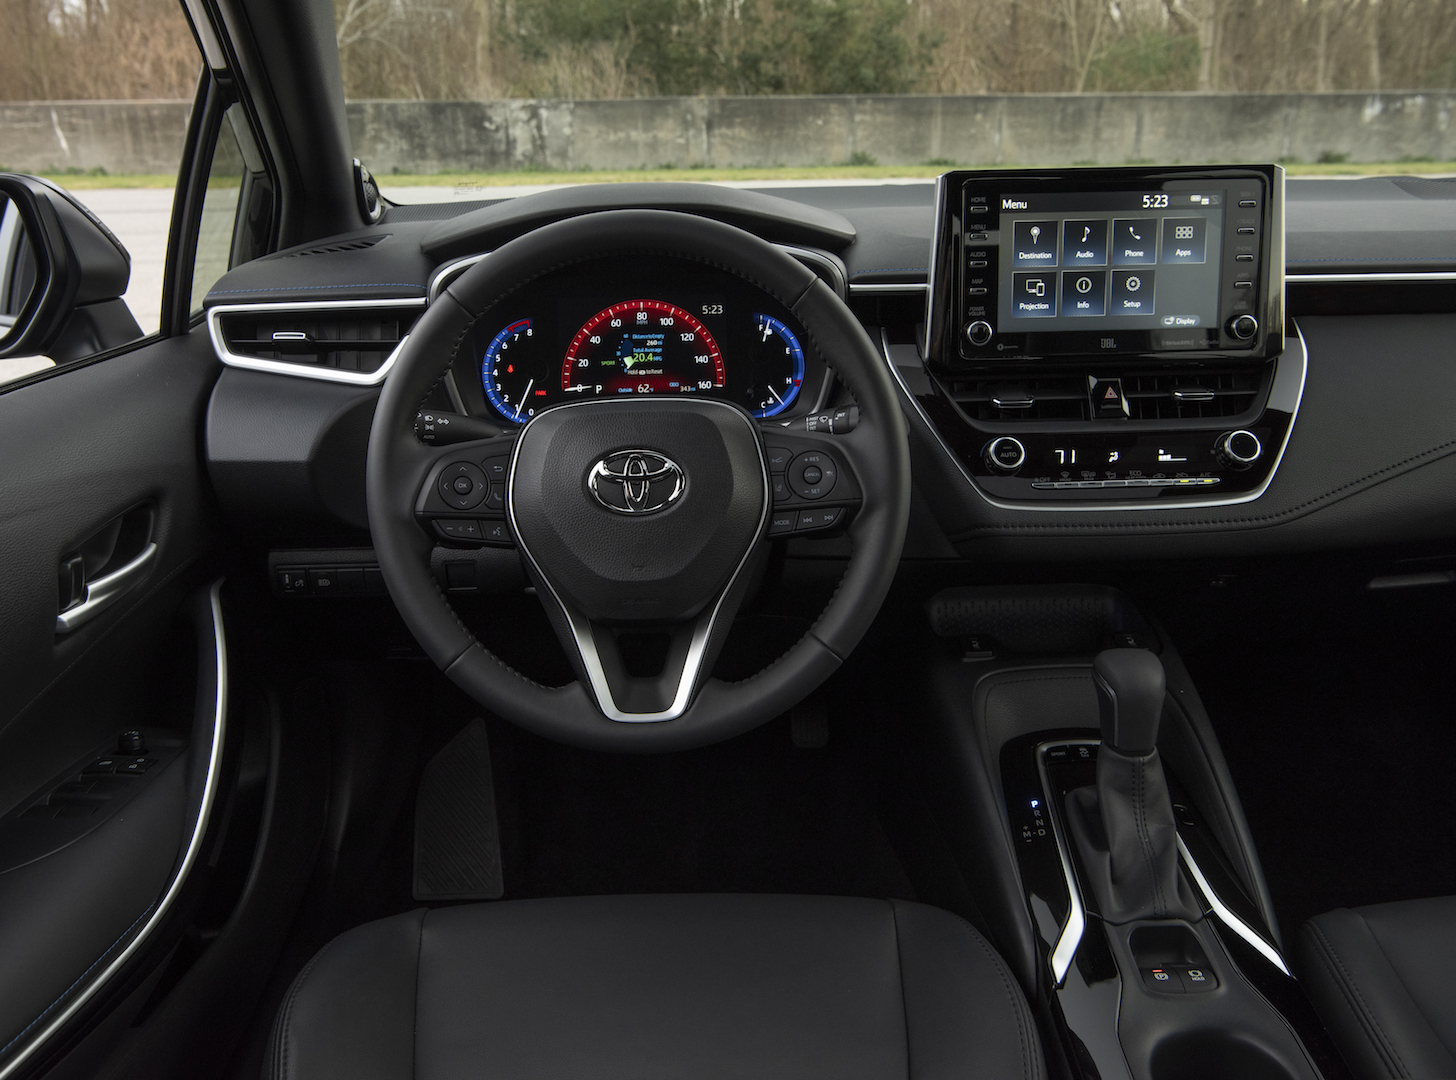 2020_Corolla_XSE_BlackSandPearl_033_v1_current